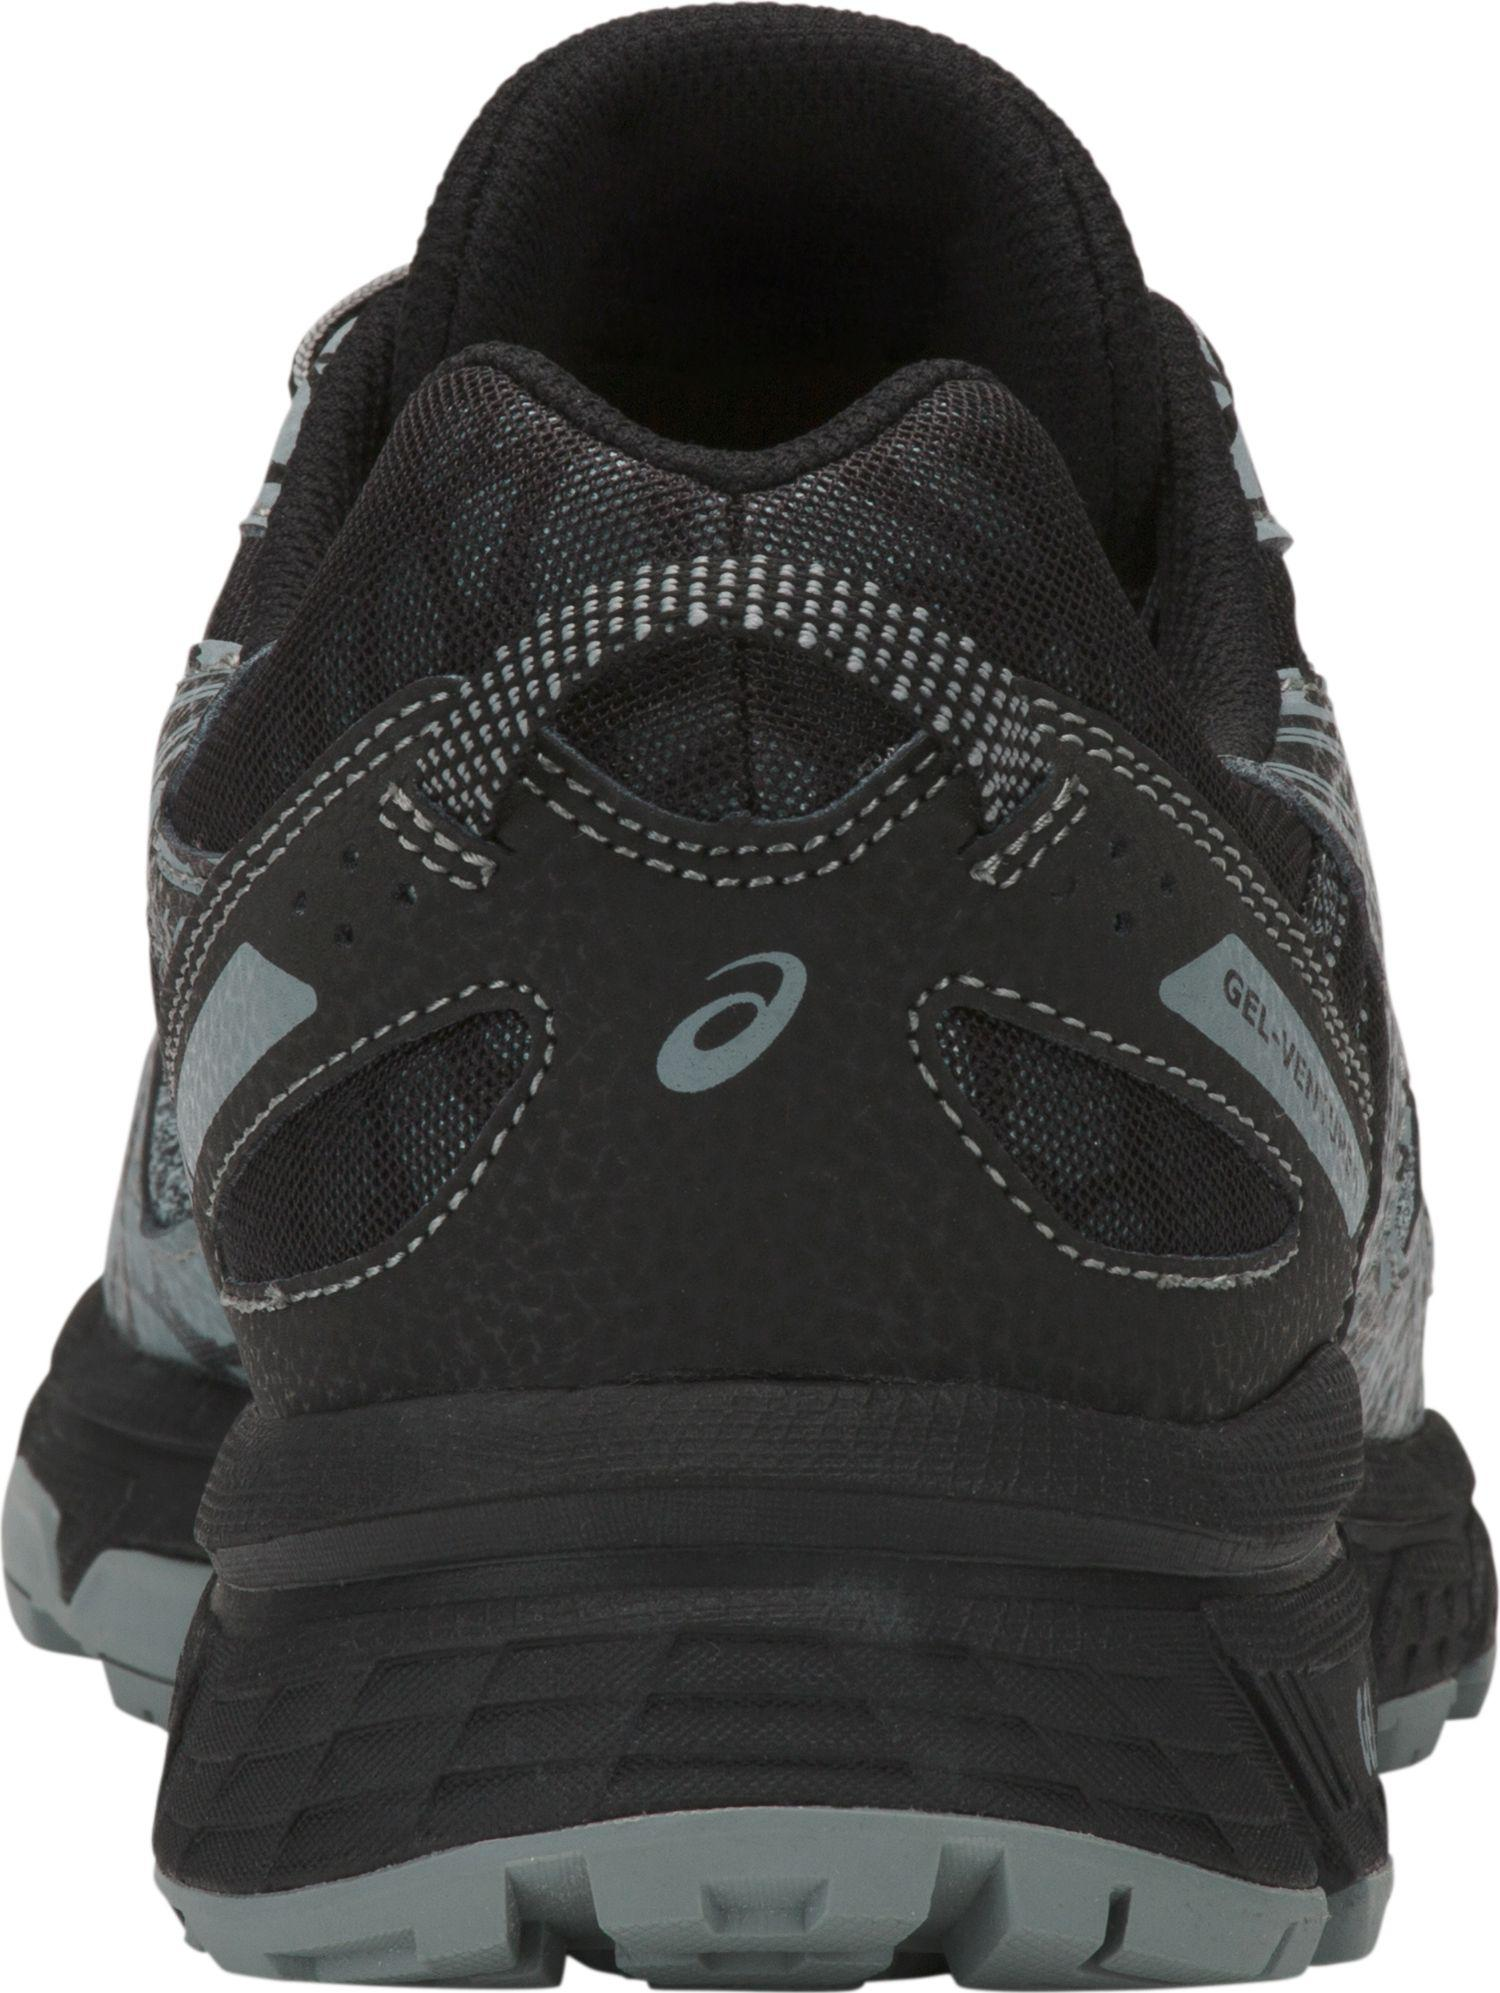 29698bd12e Asics Gel-venture 6 Trail Running Shoes in Gray for Men - Save 29 ...